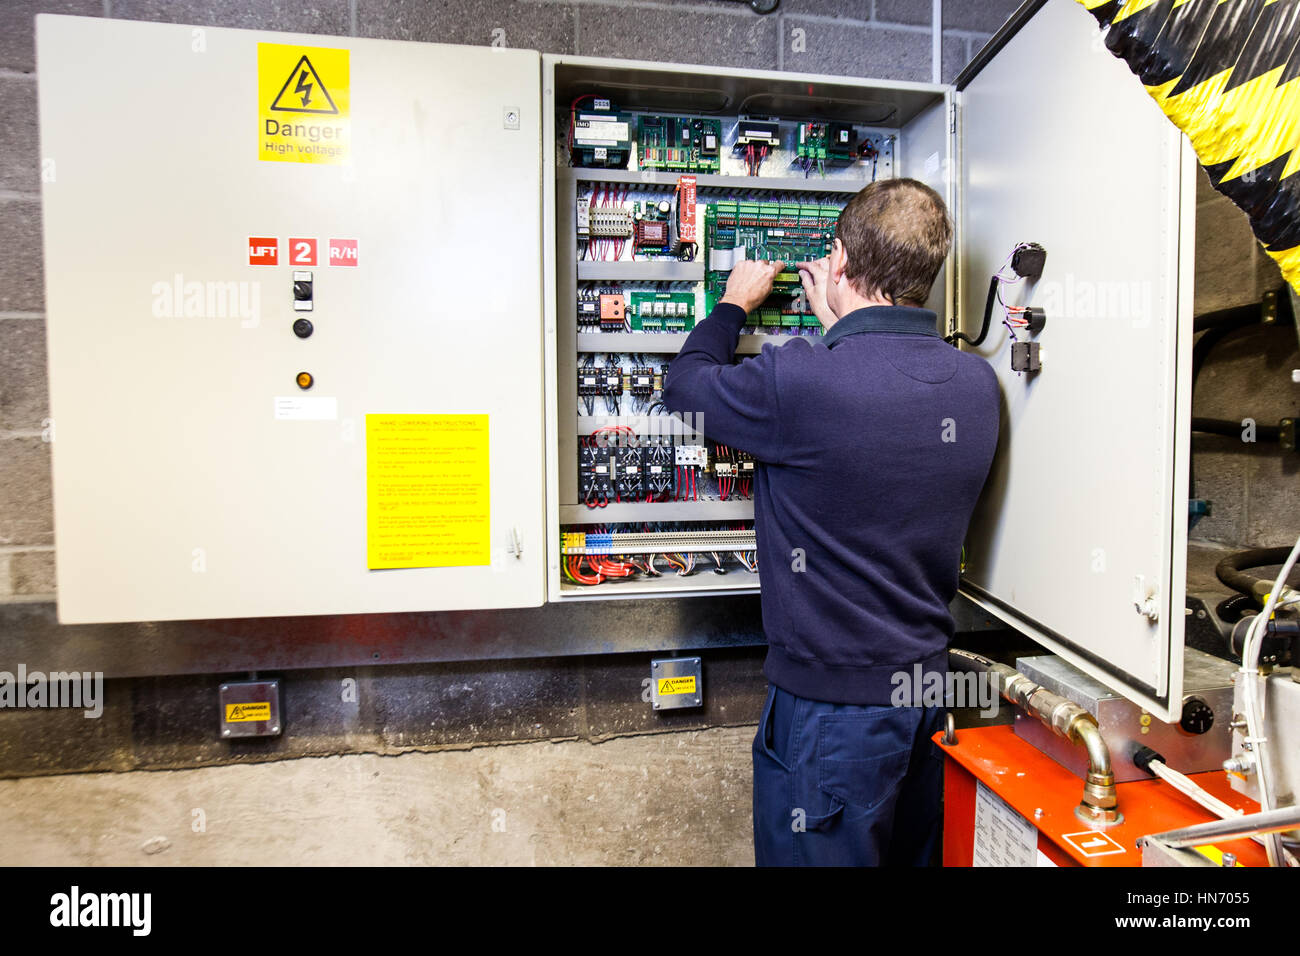 An electrician working on an electronic control panel situated in a control box - Stock Image